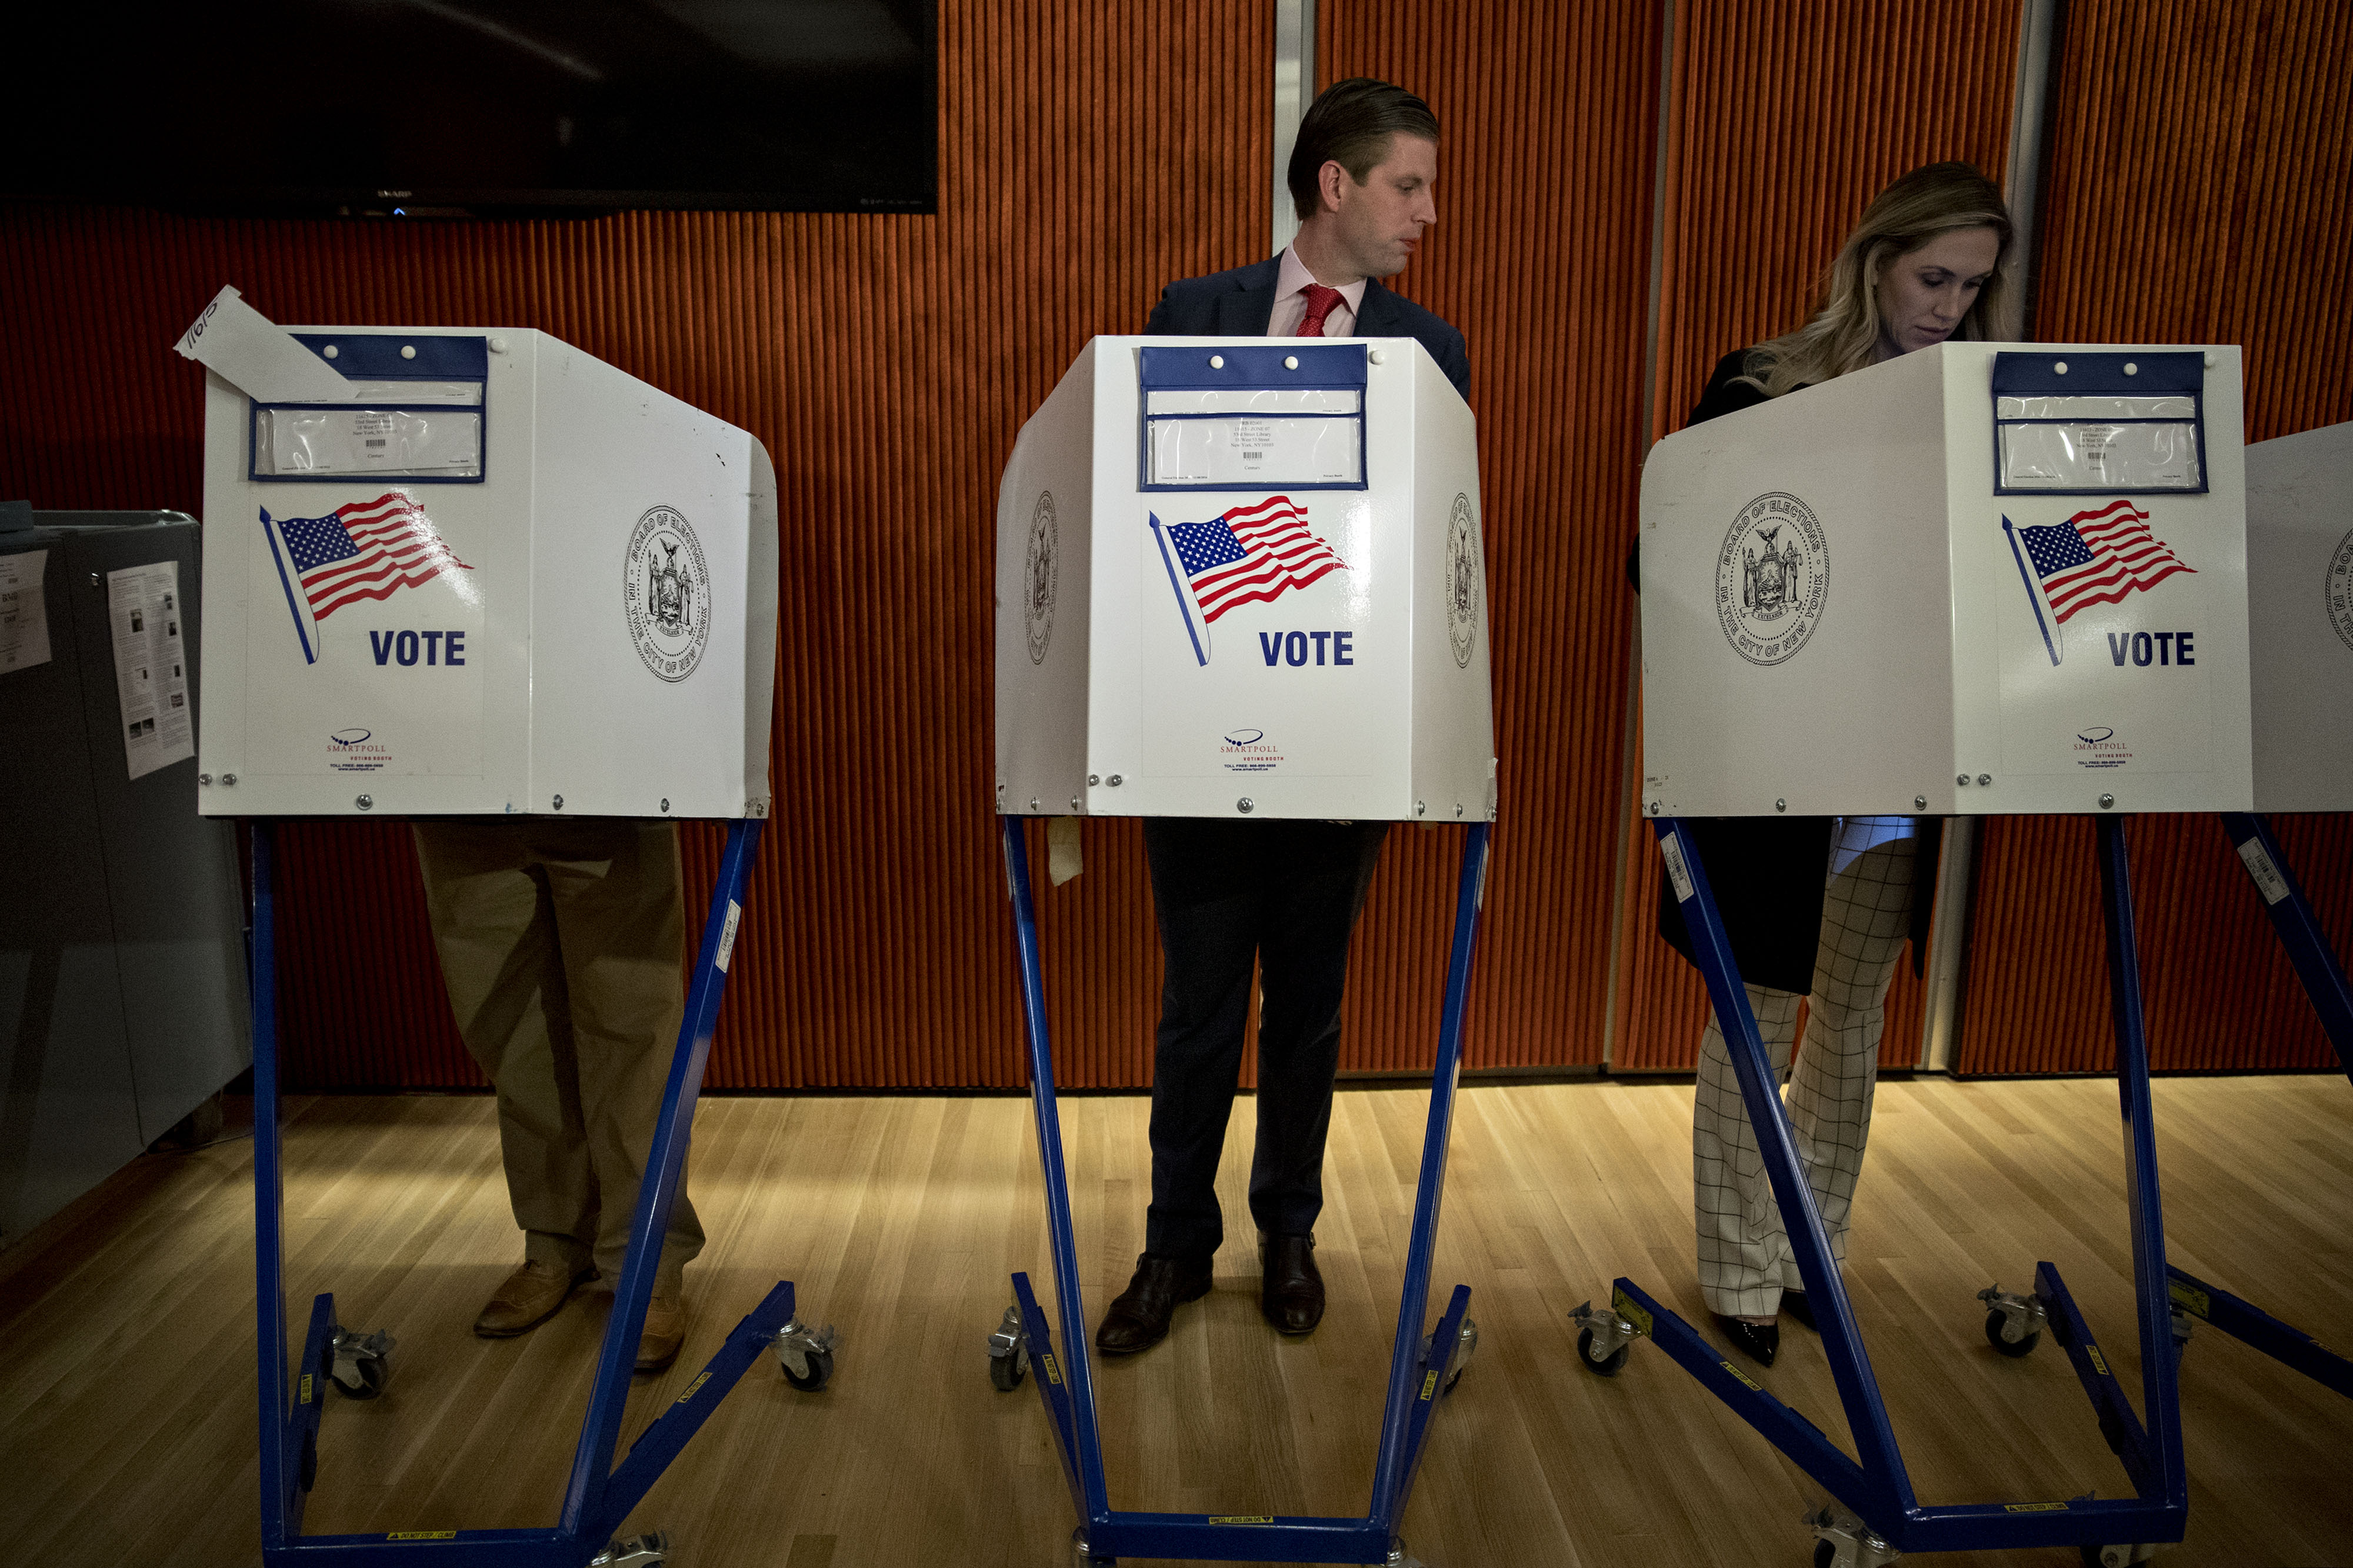 Voters Cast Their Ballots For The 2016 U.S. Presidential Election